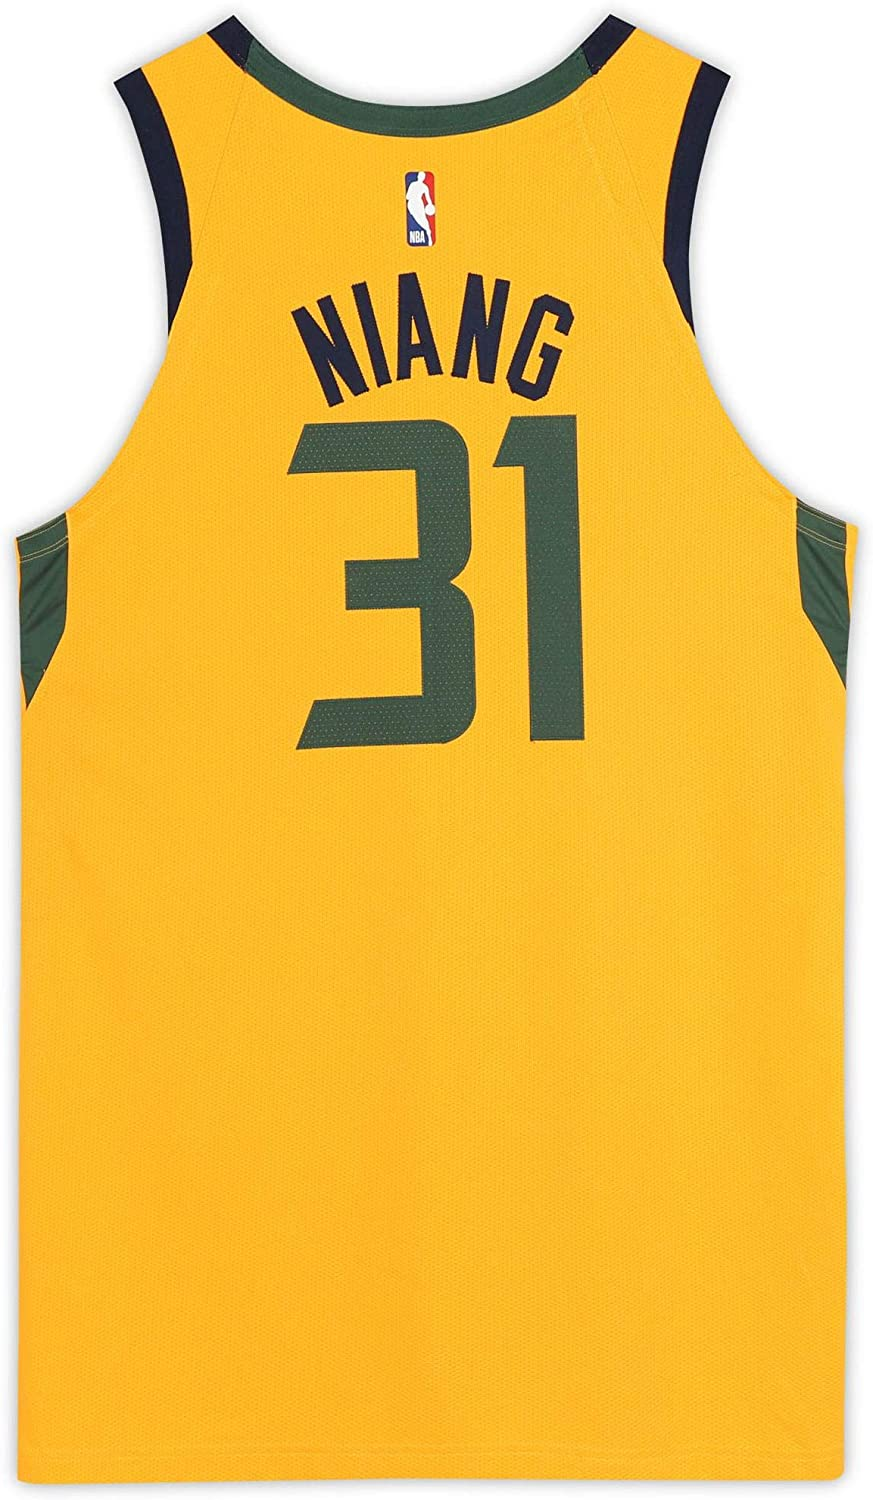 Georges Niang Utah Jazz Game-Used #31 Yellow Jersey vs. San Antonio Spurs on February 21, 2020 - Size 52+4 - Fanatics Authentic Certified